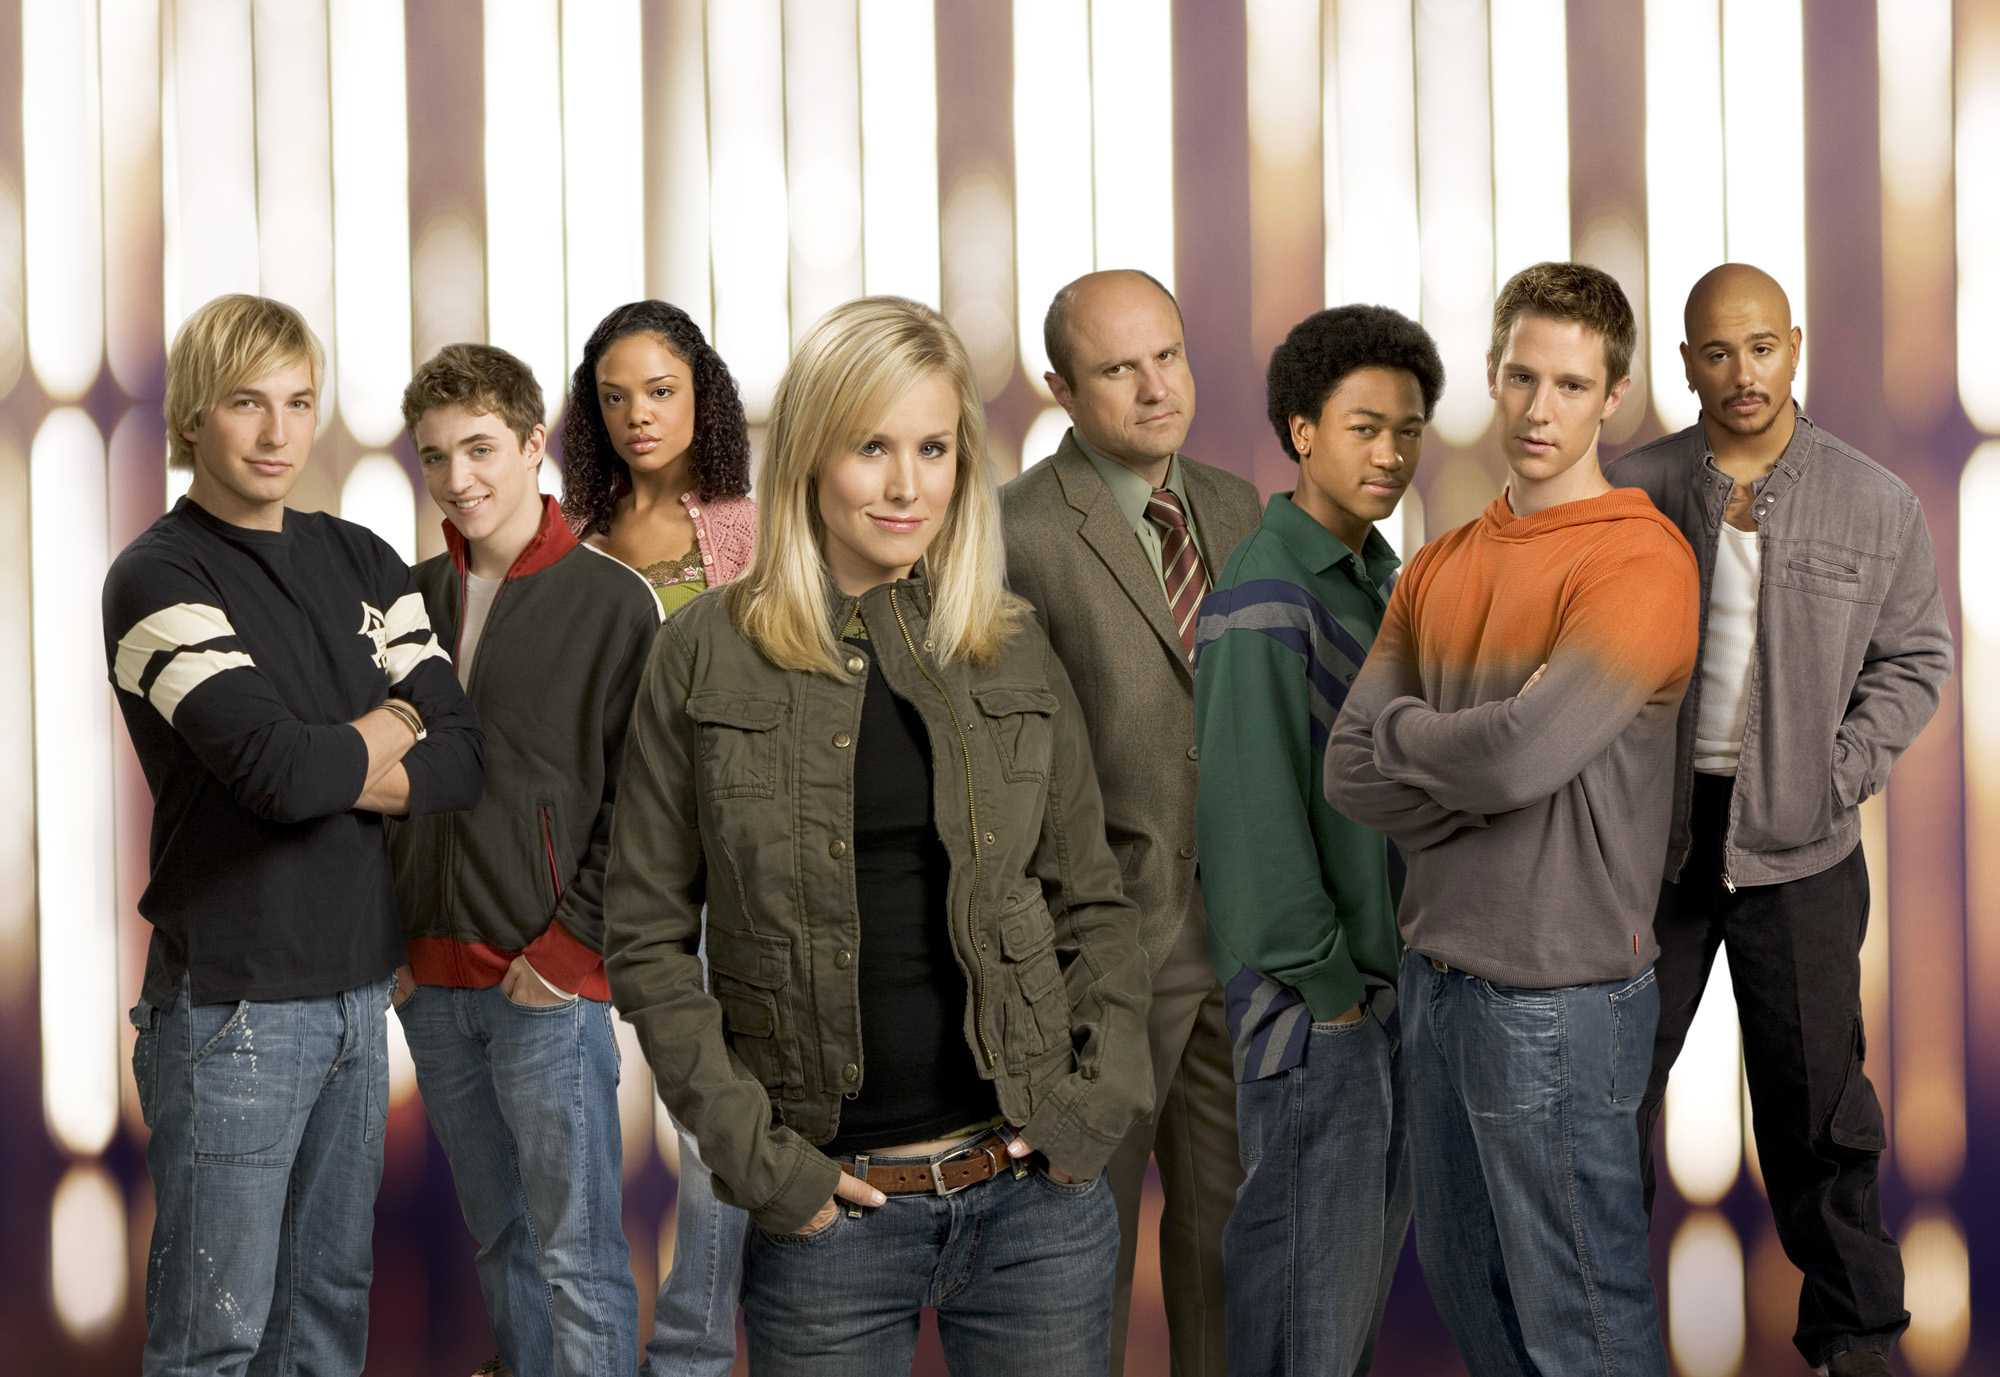 The cast of Veronica Mars. Image courtesy of Warner Bros.